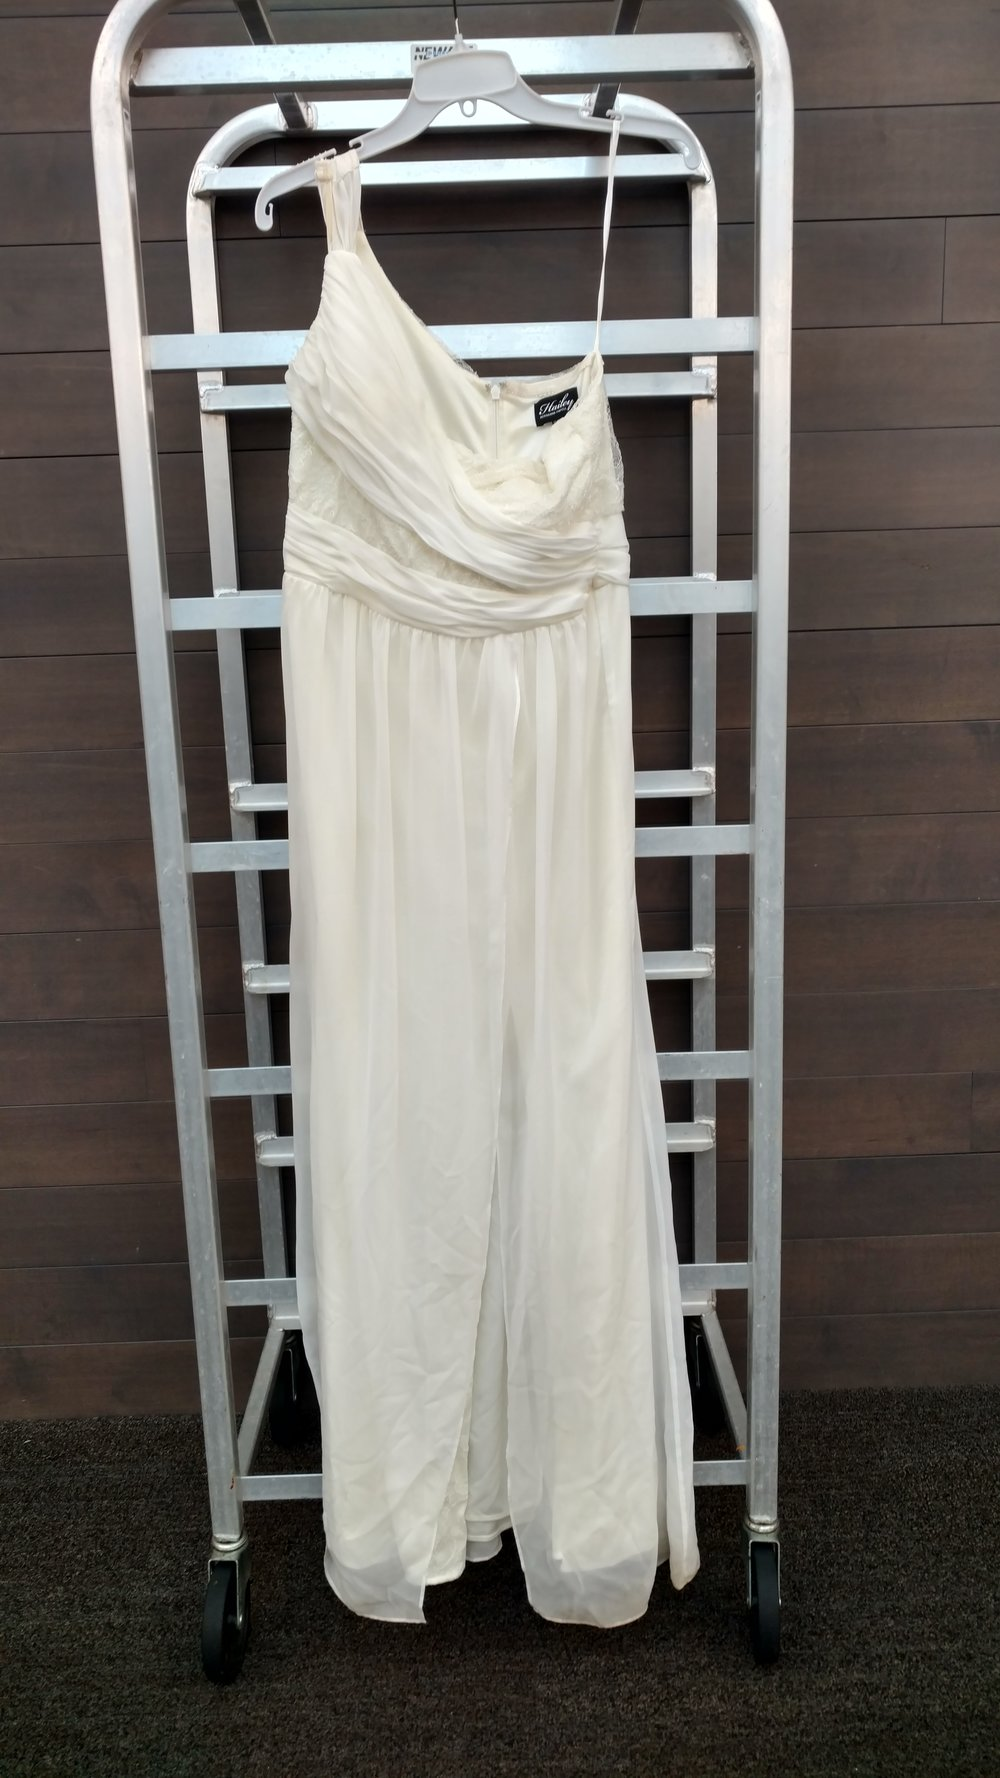 Dress 5 - Hailey by Adrianna Papell - Ivory, Size 12, Waist 30 inches, Length from neckline 48 inches